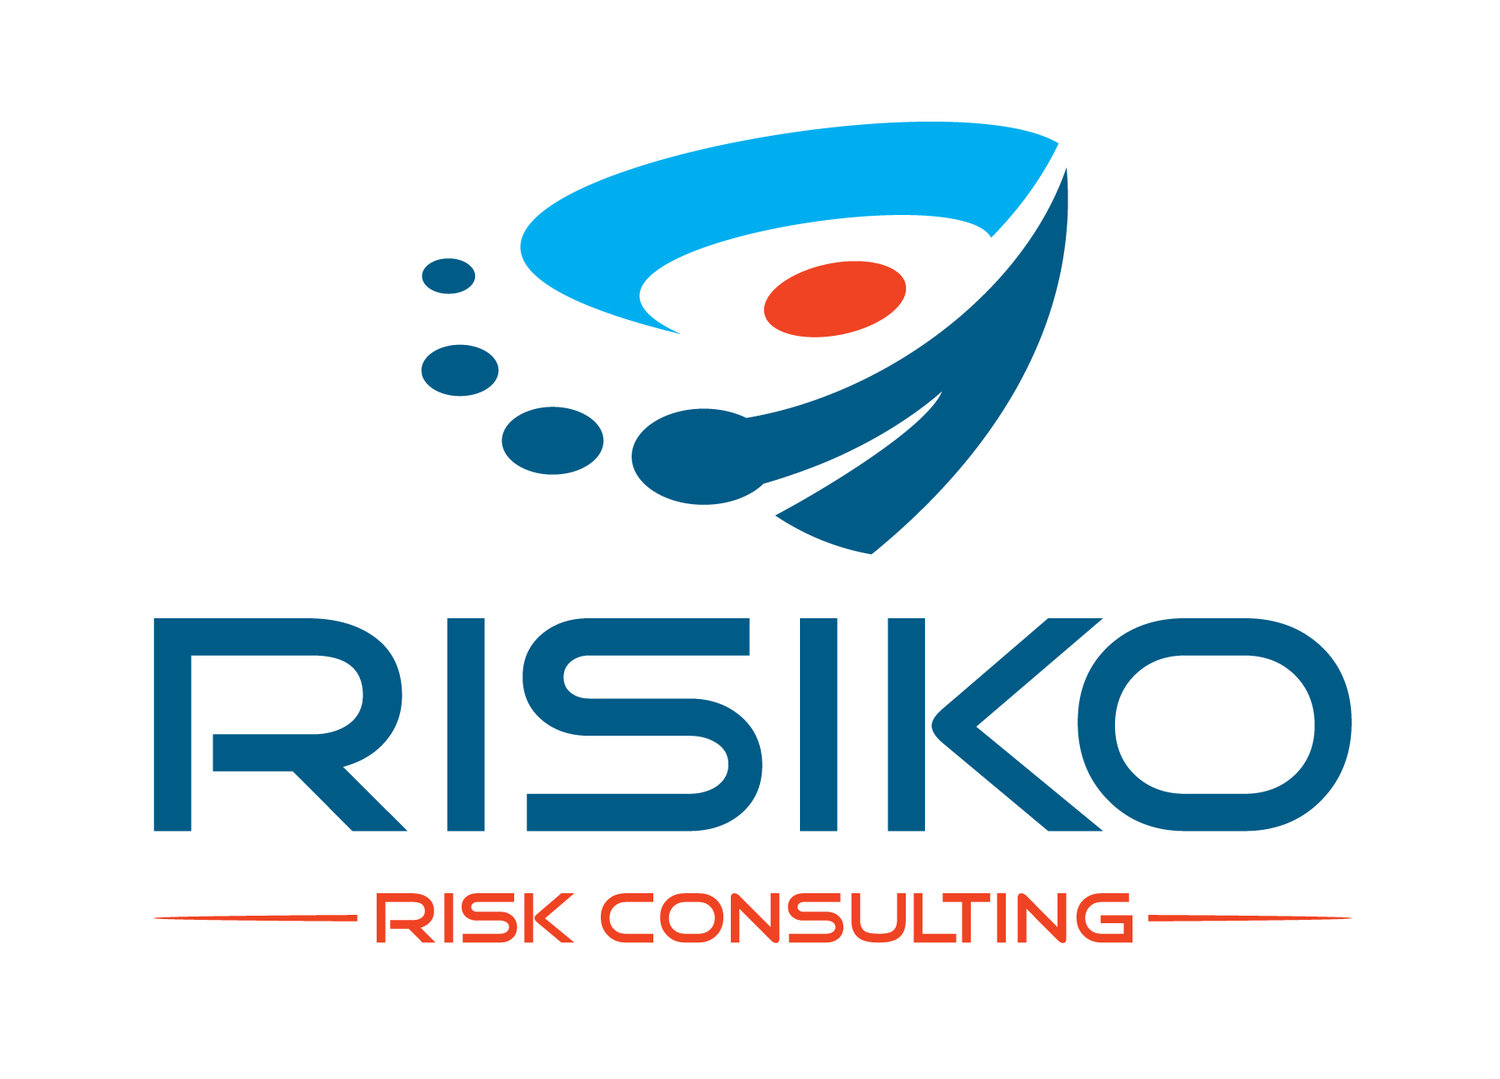 RISIKO - Risk Consulting